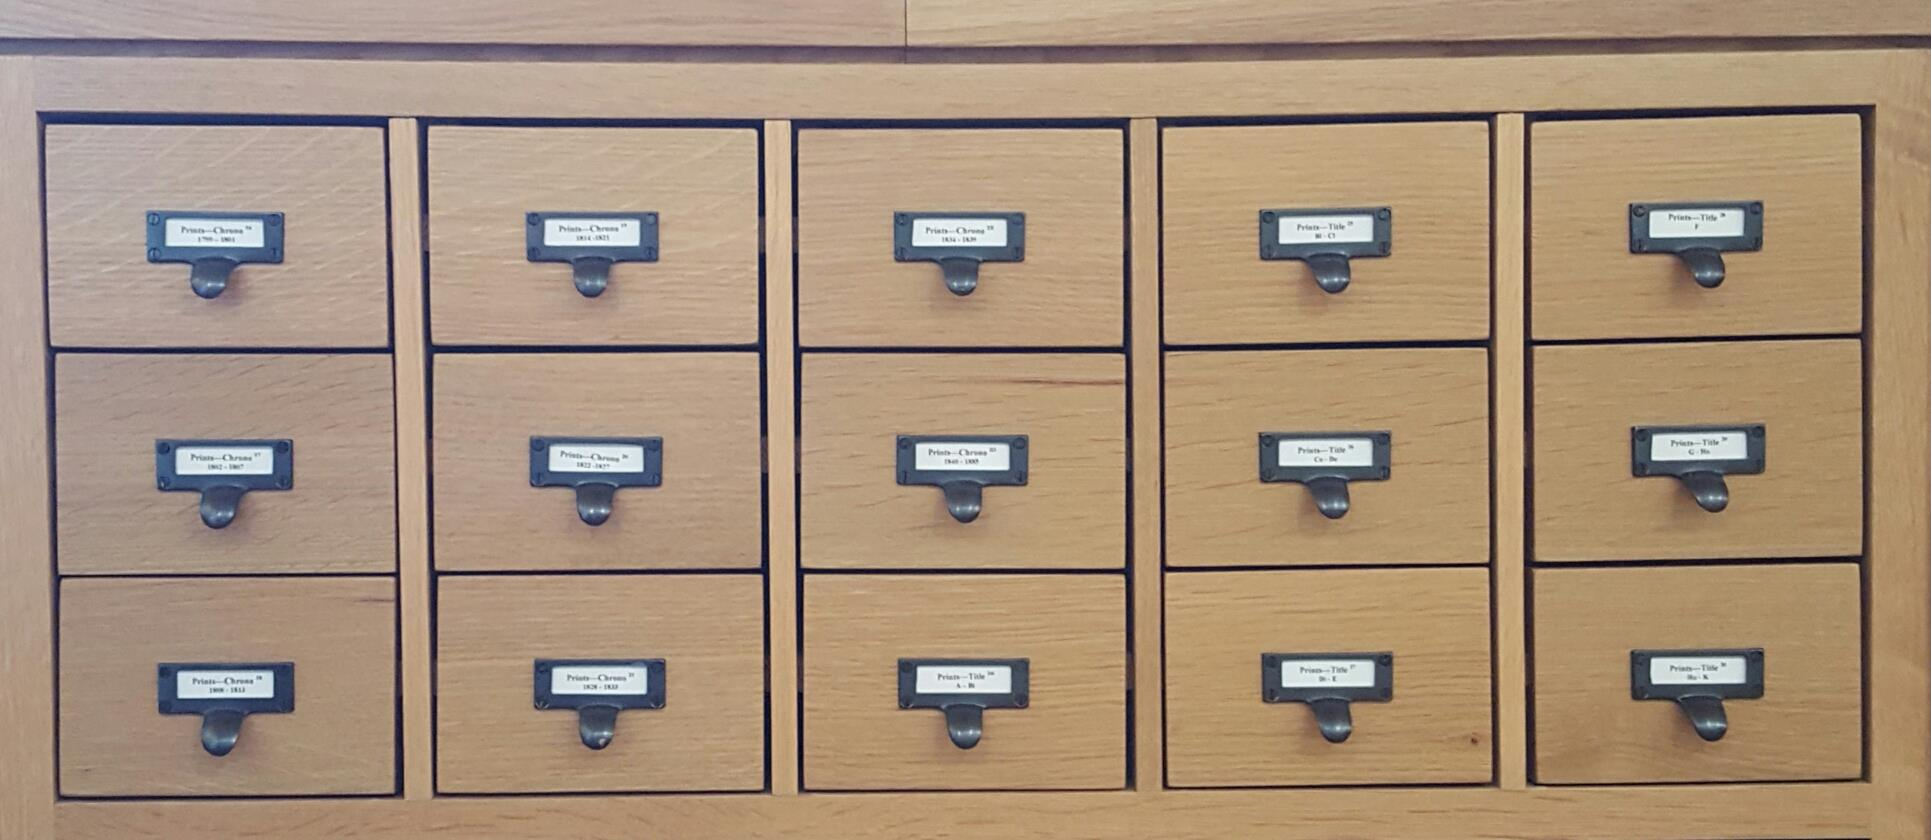 photo of the card catalog drawers at the LWL